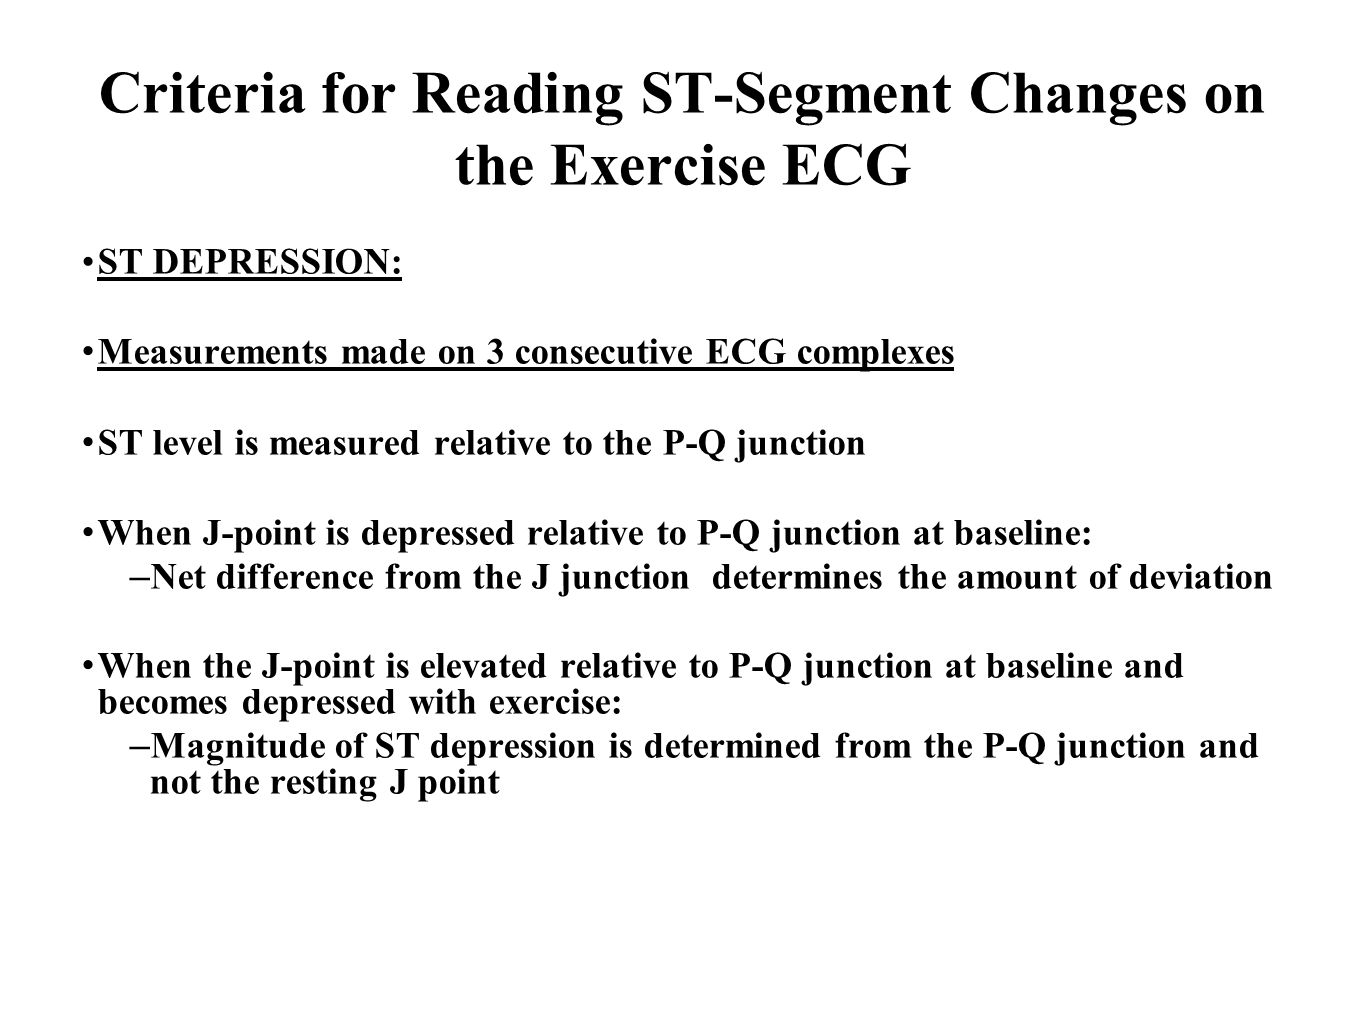 Criteria for Reading ST-Segment Changes on the Exercise ECG